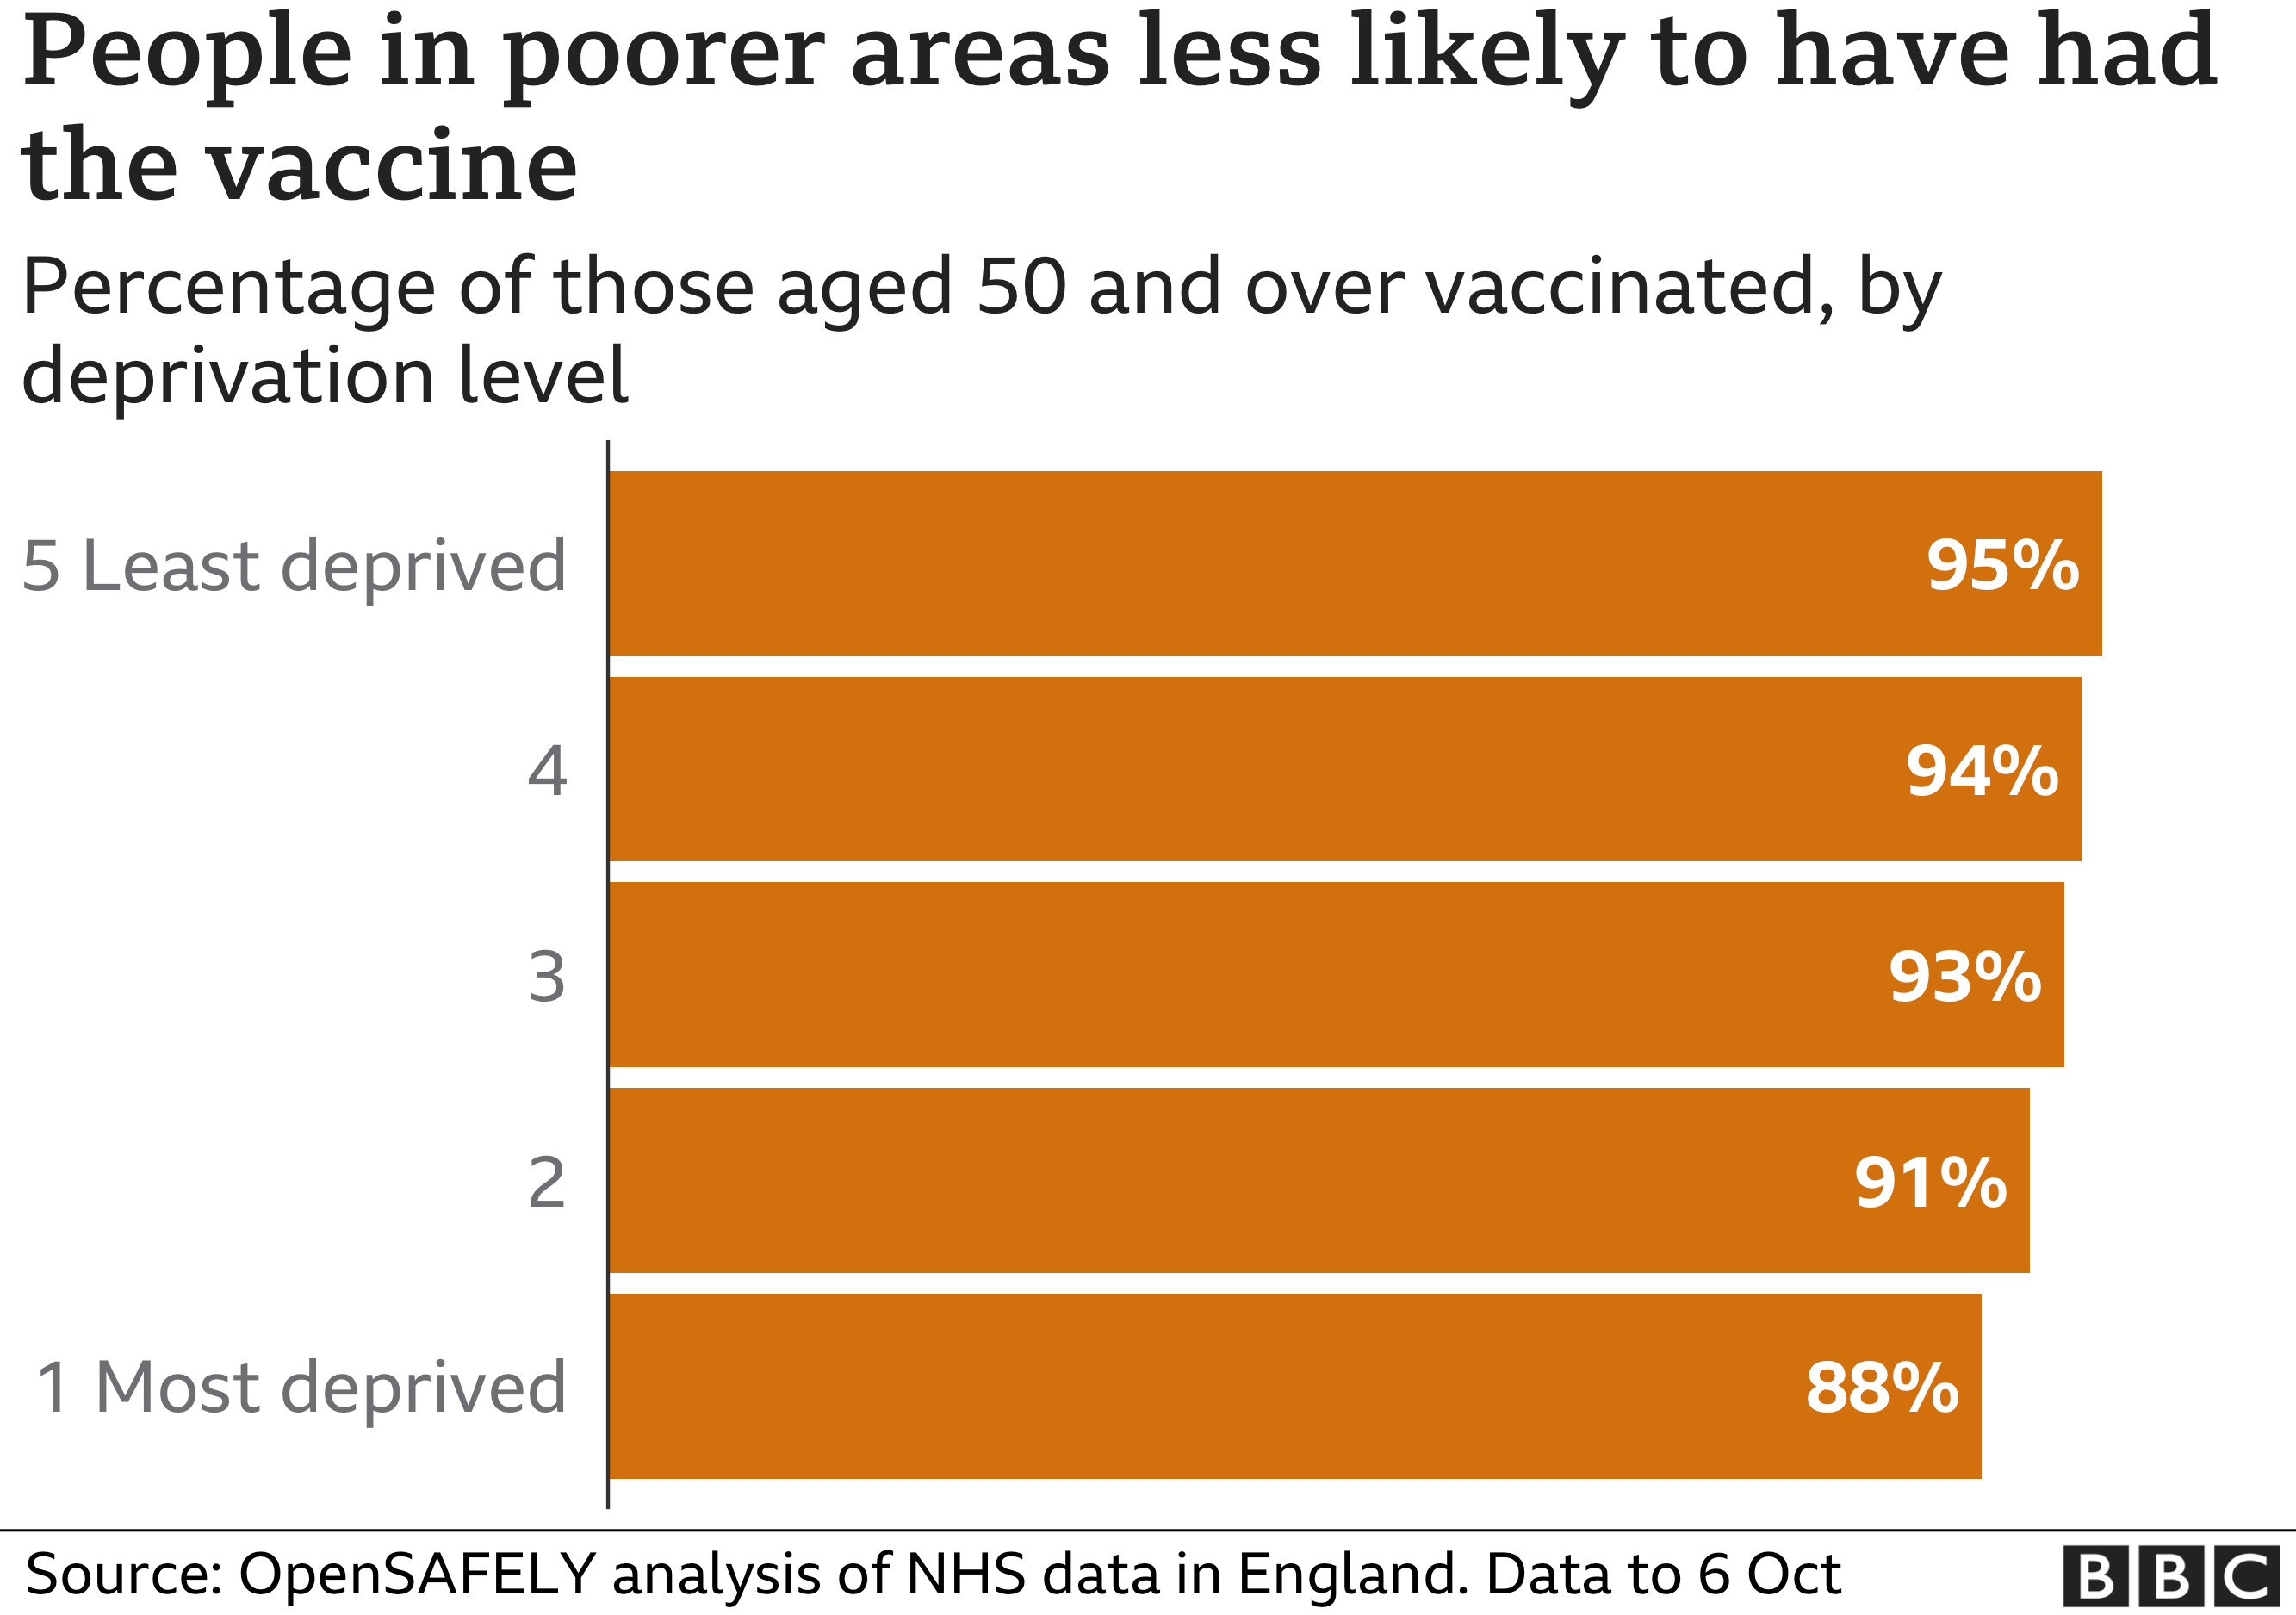 Chart showing people in poorer areas are less likely to have had a vaccine